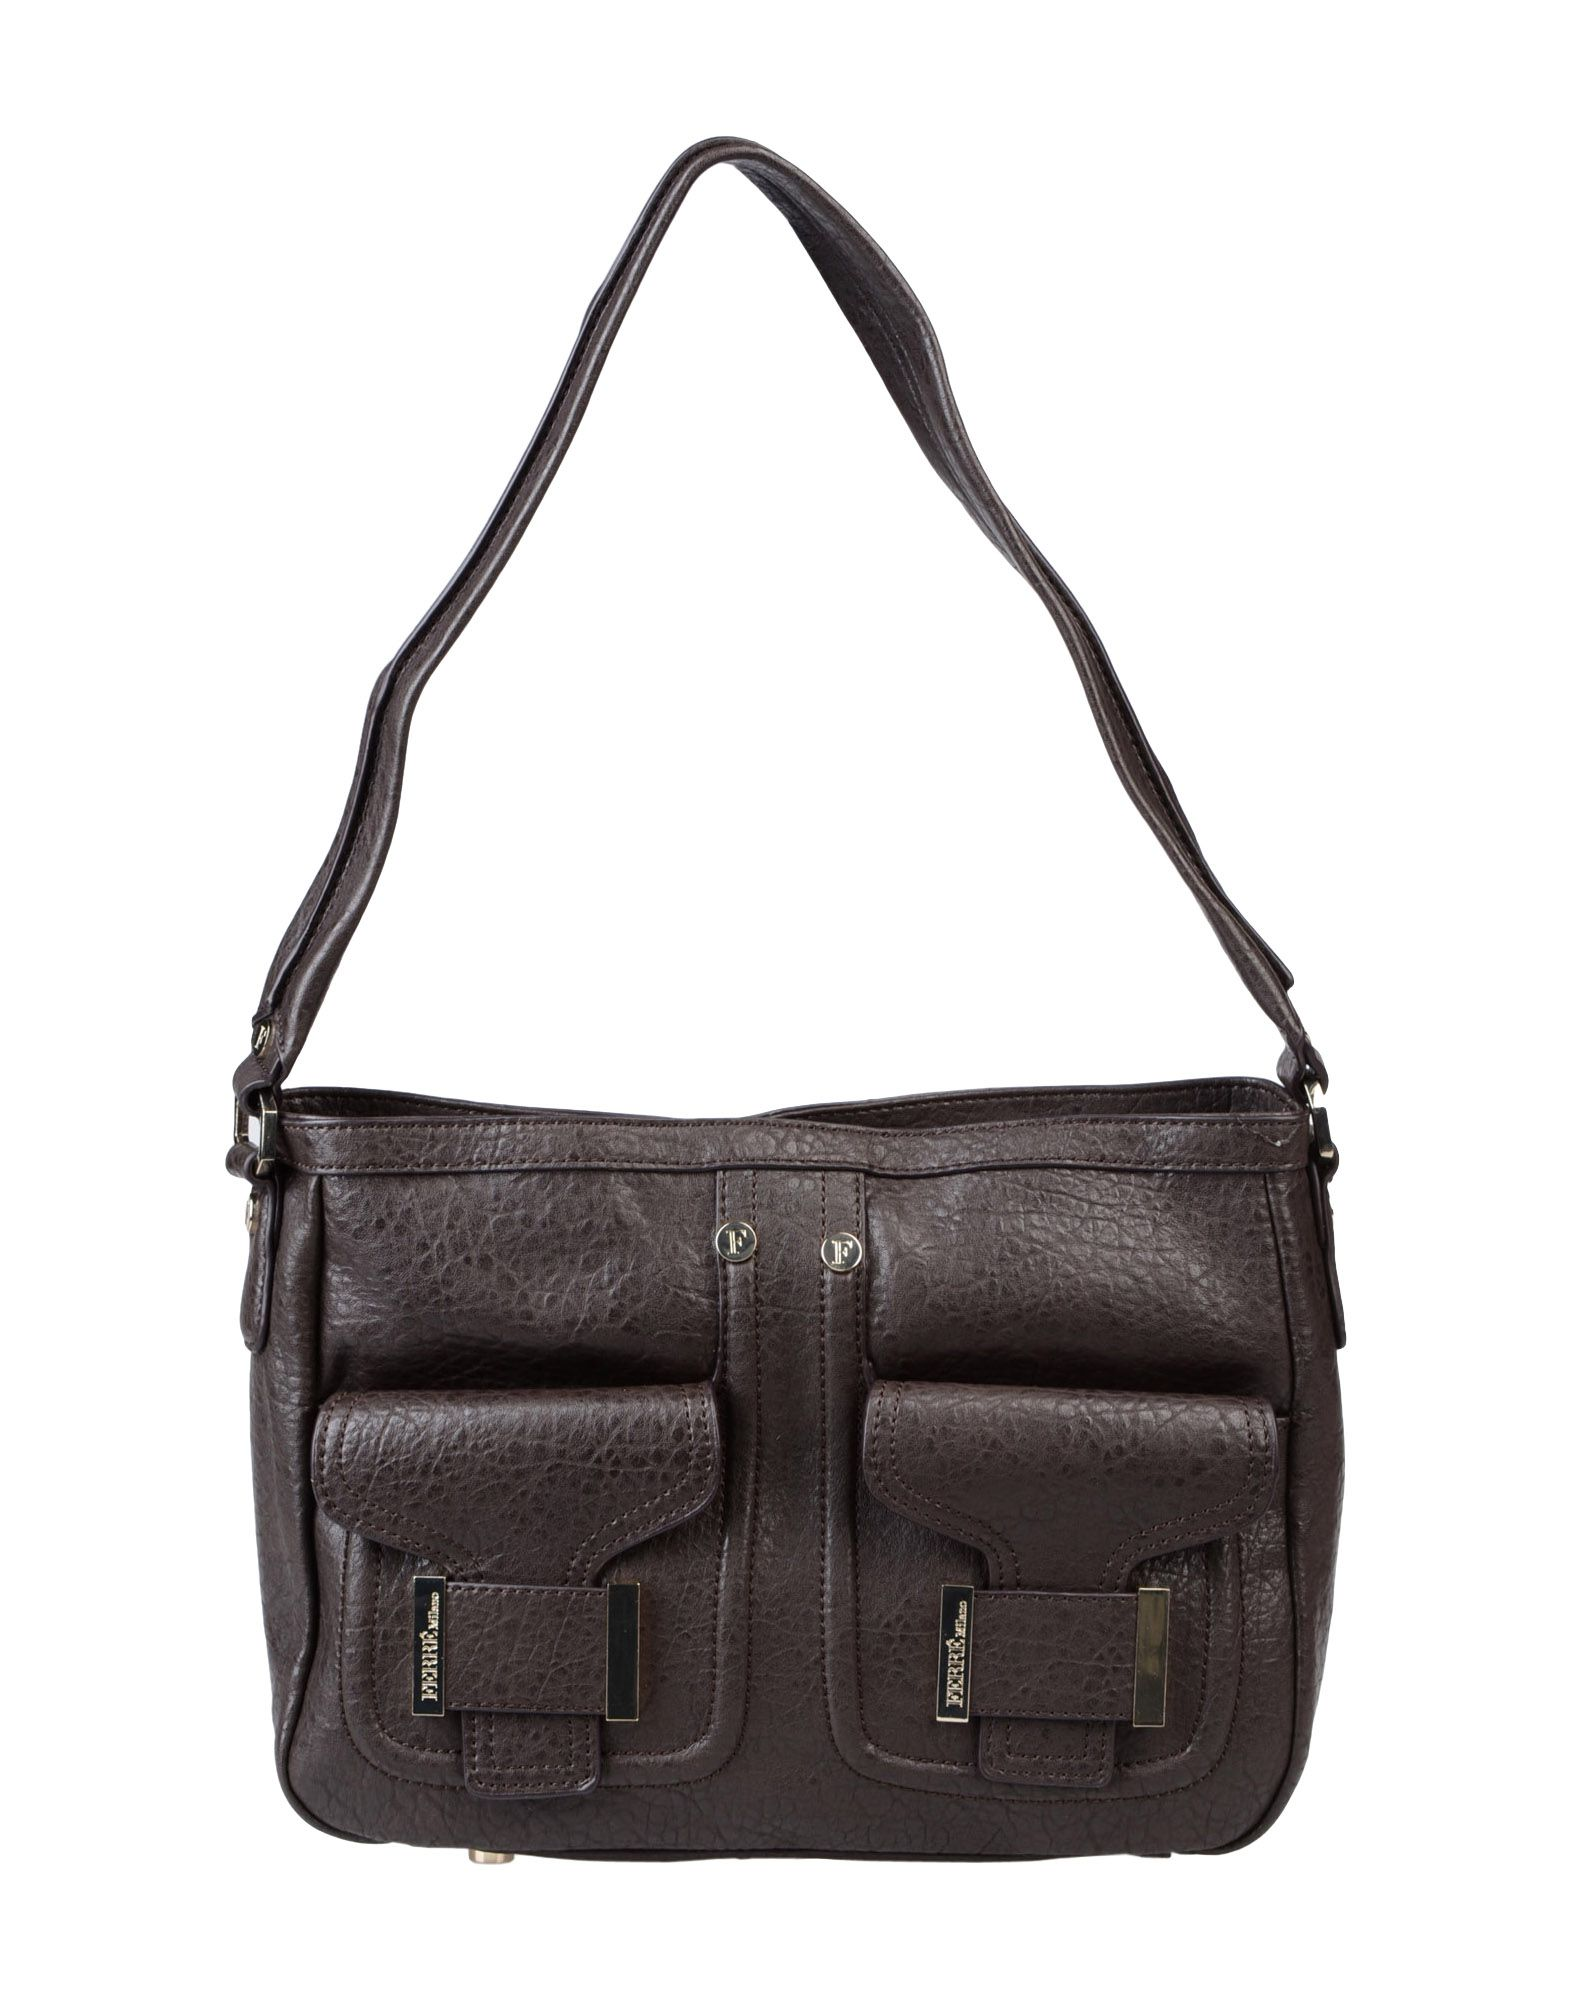 Lyst - Ferré Medium Fabric Bag in Brown